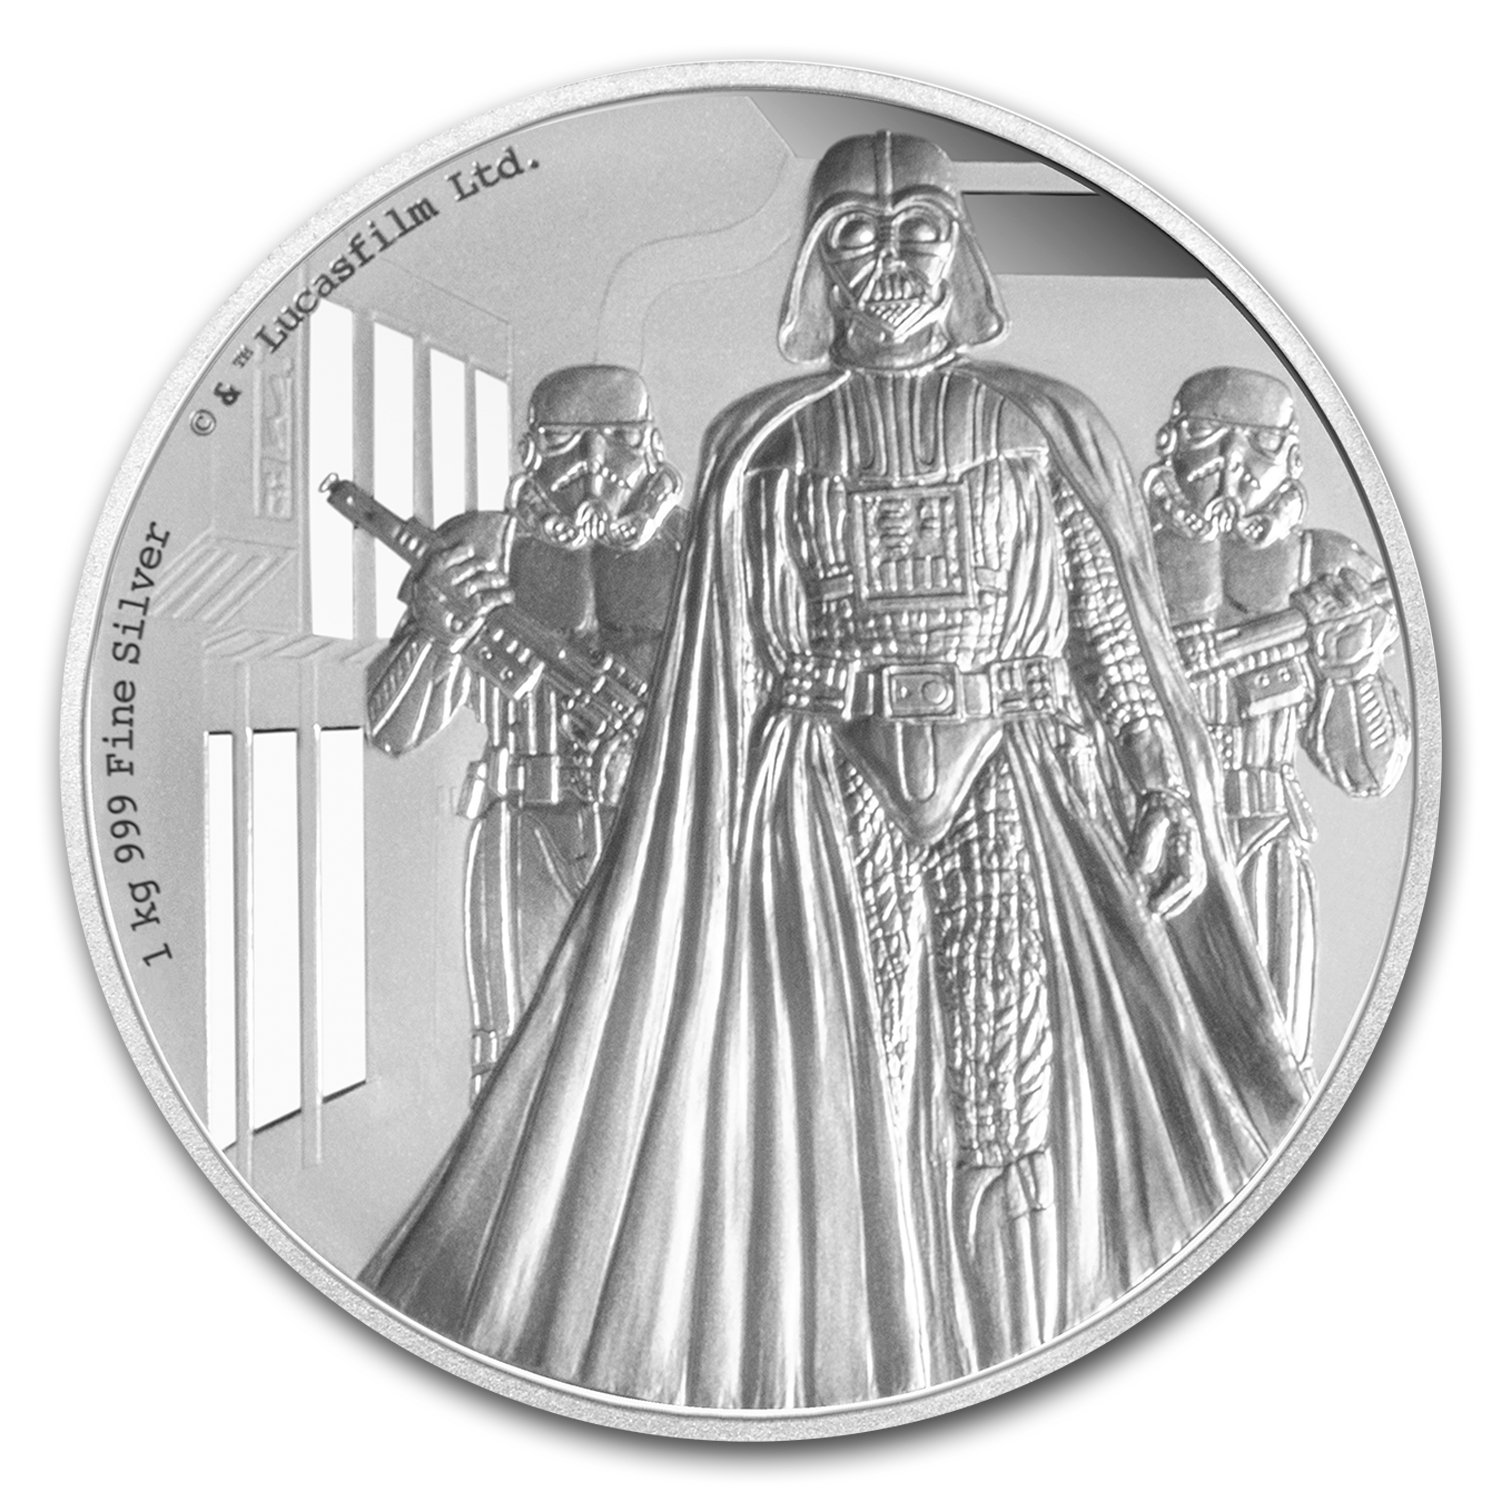 2016 Niue 1 kilo Silver $100 Star Wars Darth Vader (w/Box & COA)